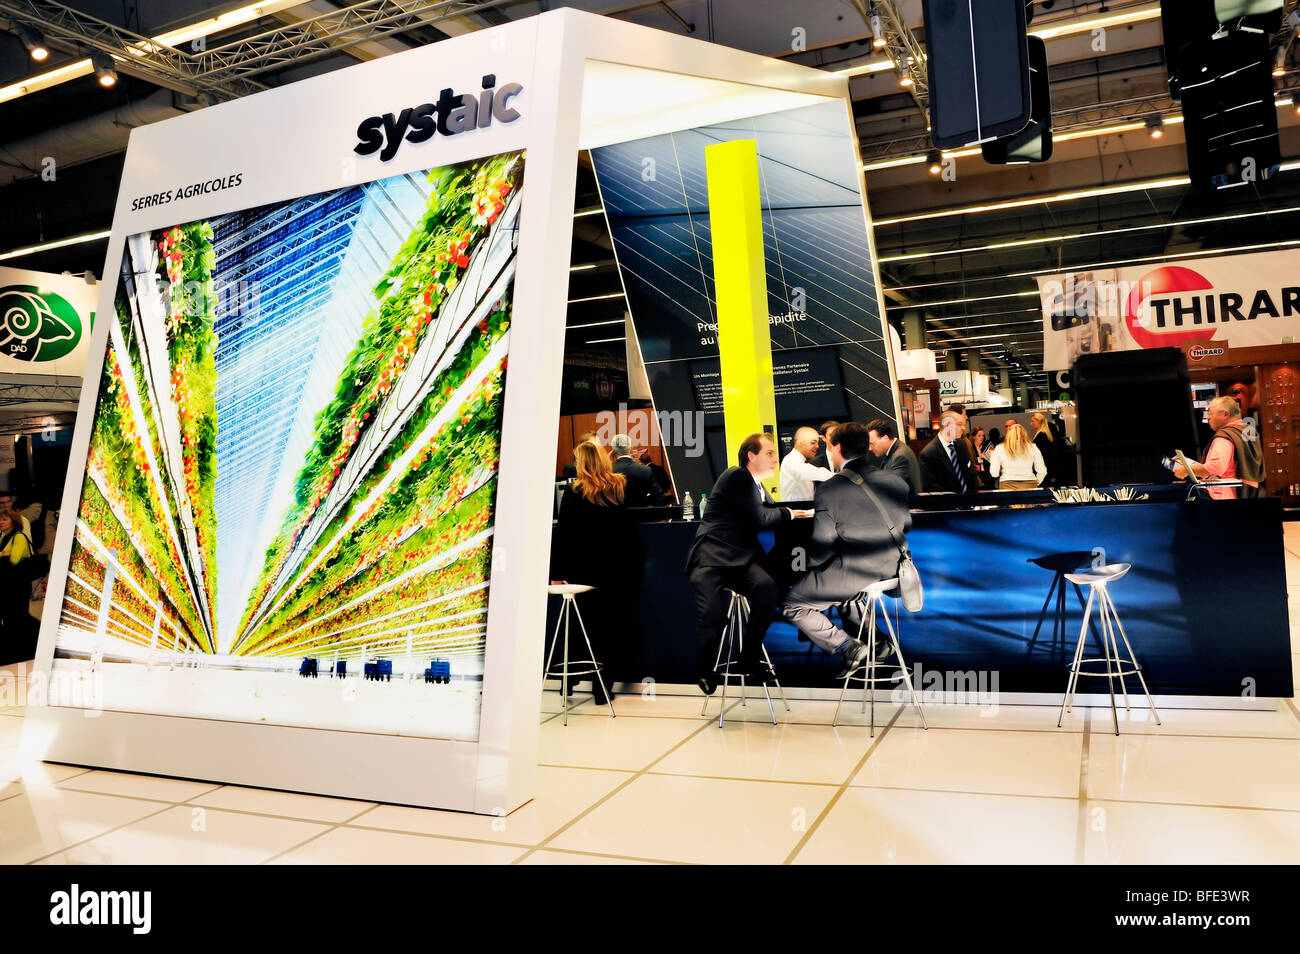 Paris, France, Construction Equipment Trade Show, 'Solar Energy', 'Agricultural Greenhouses', solar - Stock Image